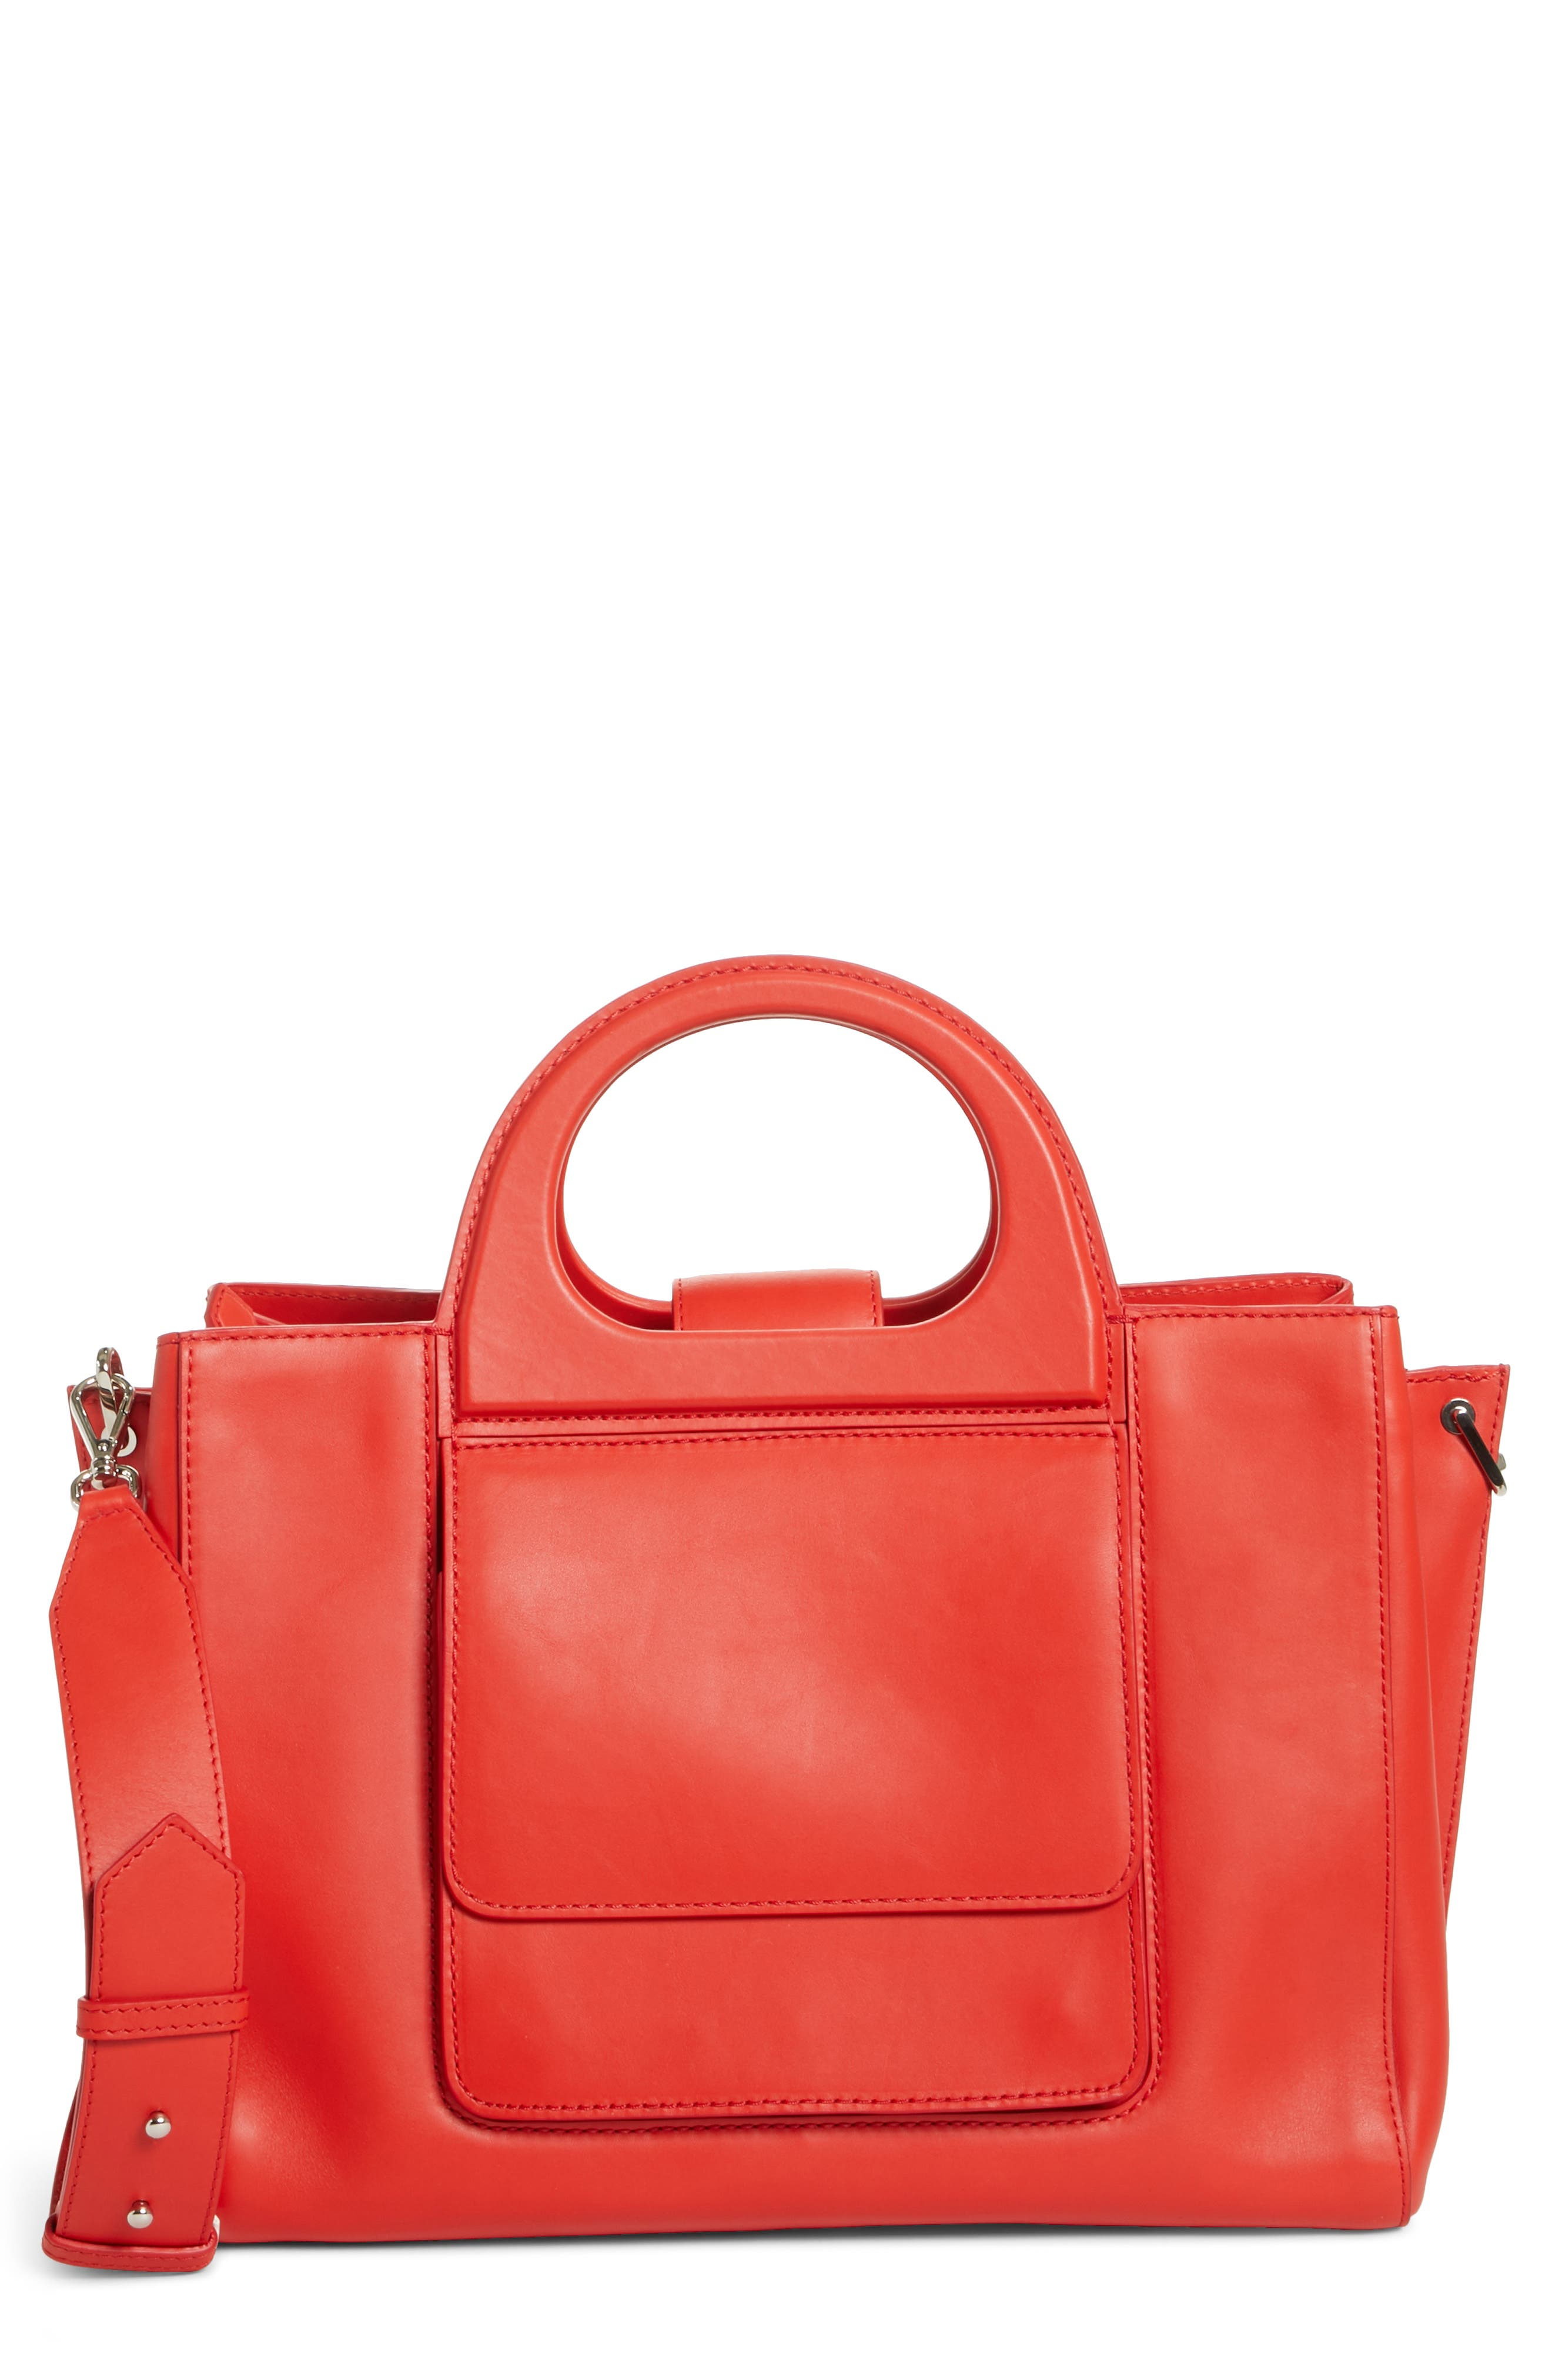 Medium Grace Leather Tote,                         Main,                         color, Coral